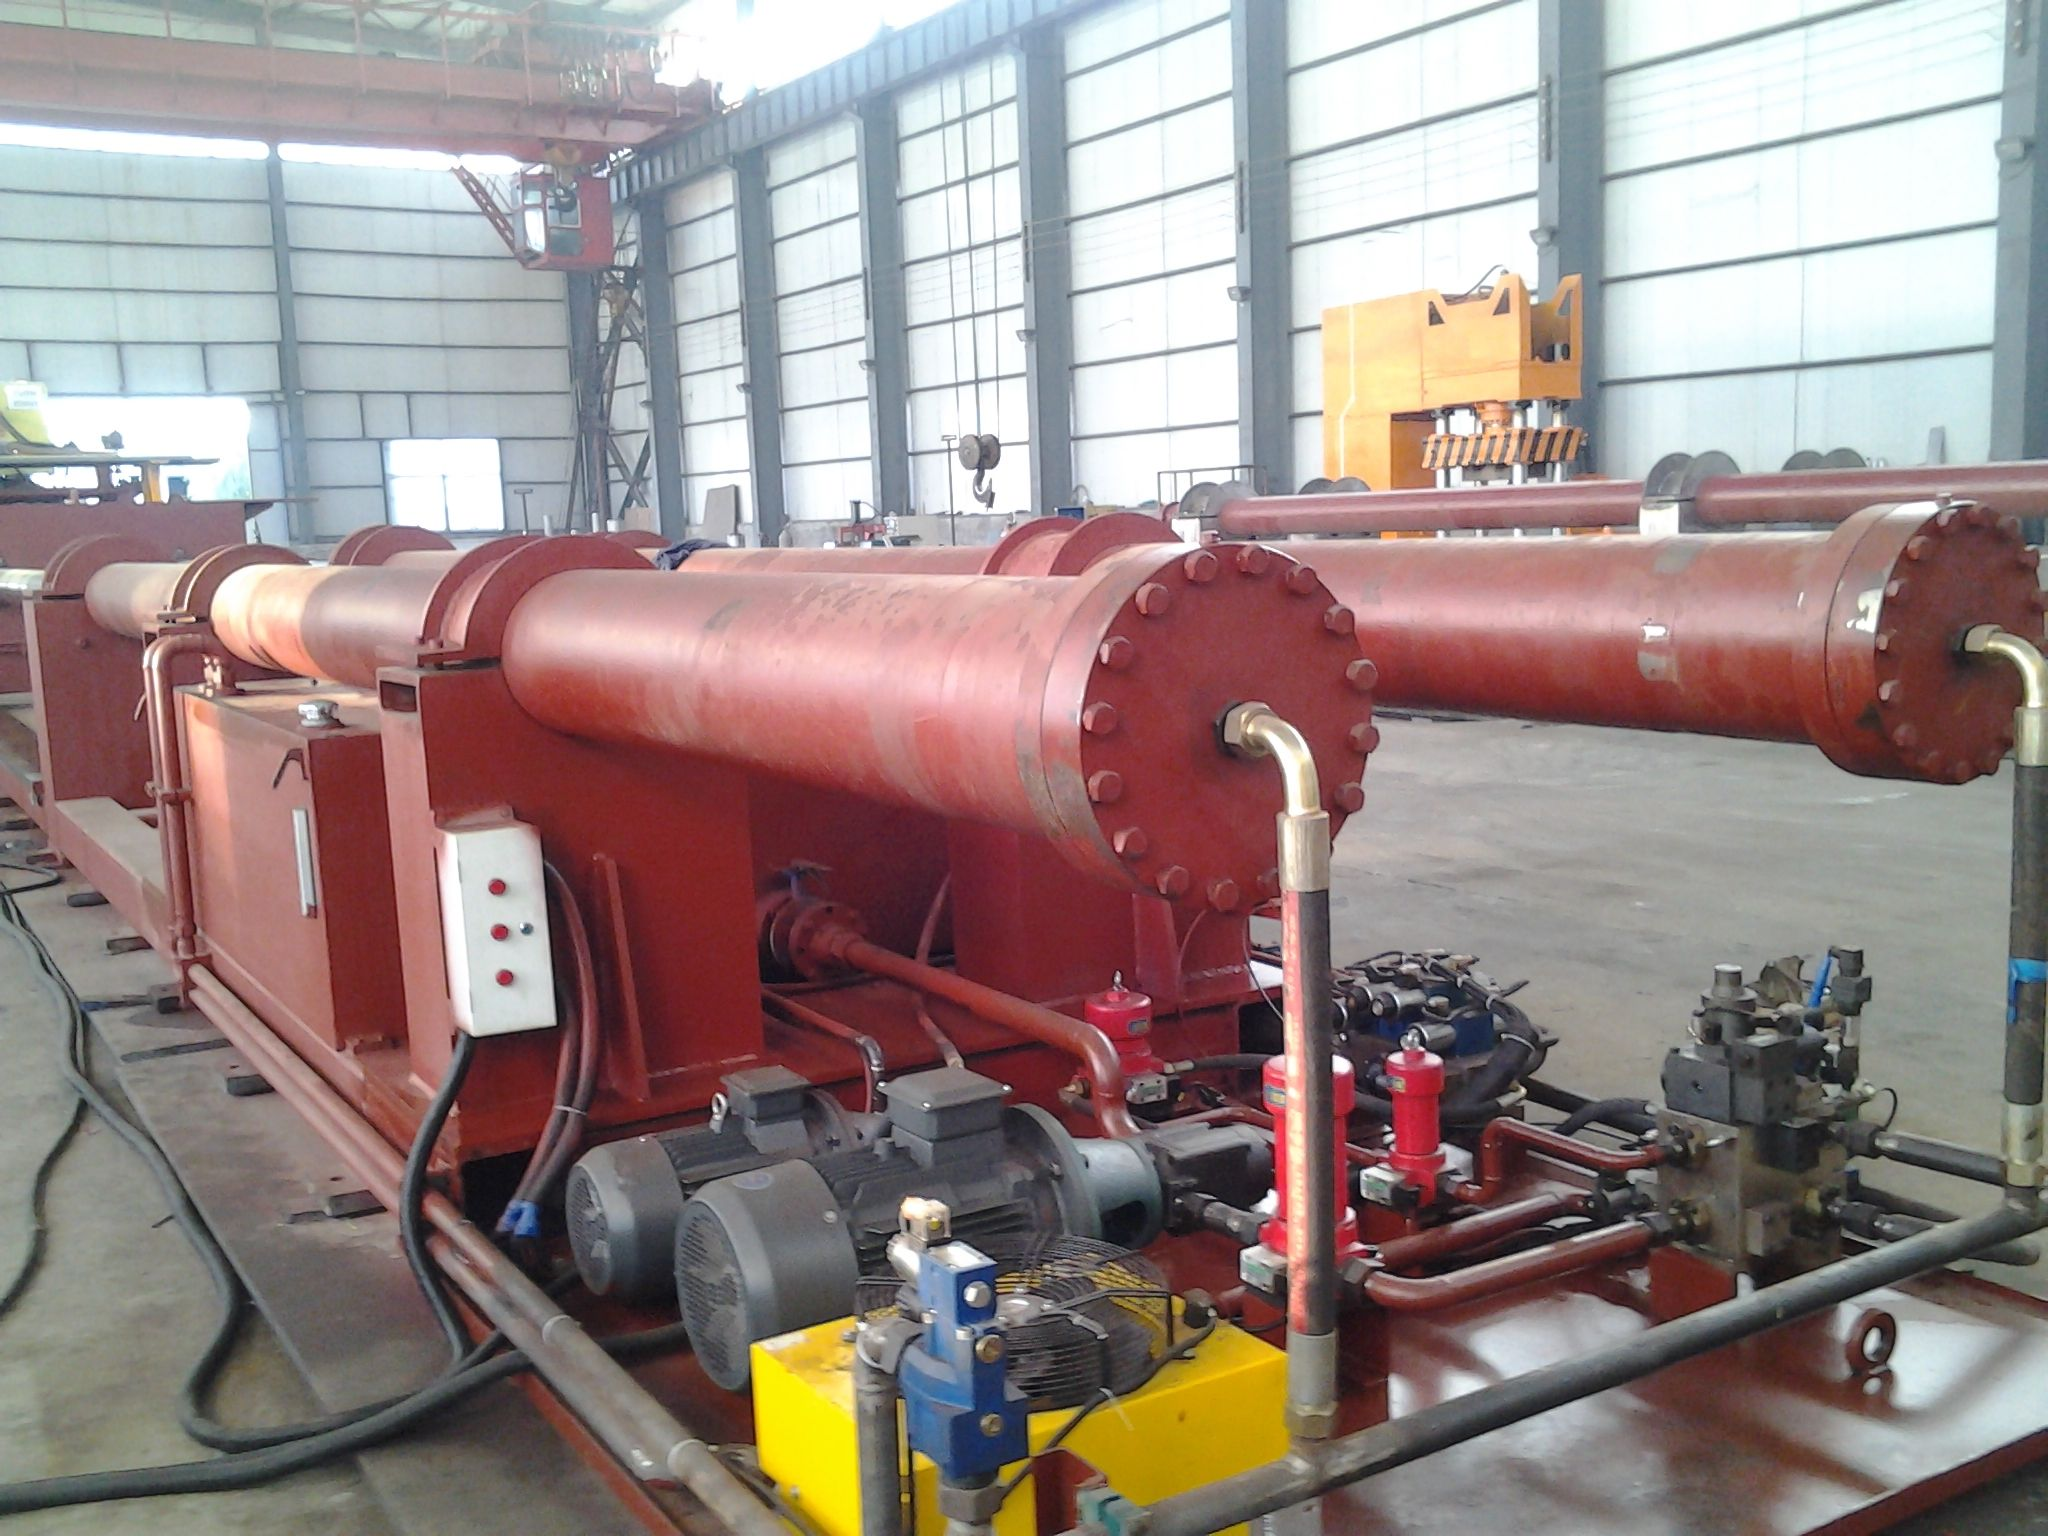 820 Bending Machine Please Check It Wechat Whatsapp 86 15931710332 Service2 Heiyangroup Com Www Sfittings Com Fire Hydrant Hydrant Pipes